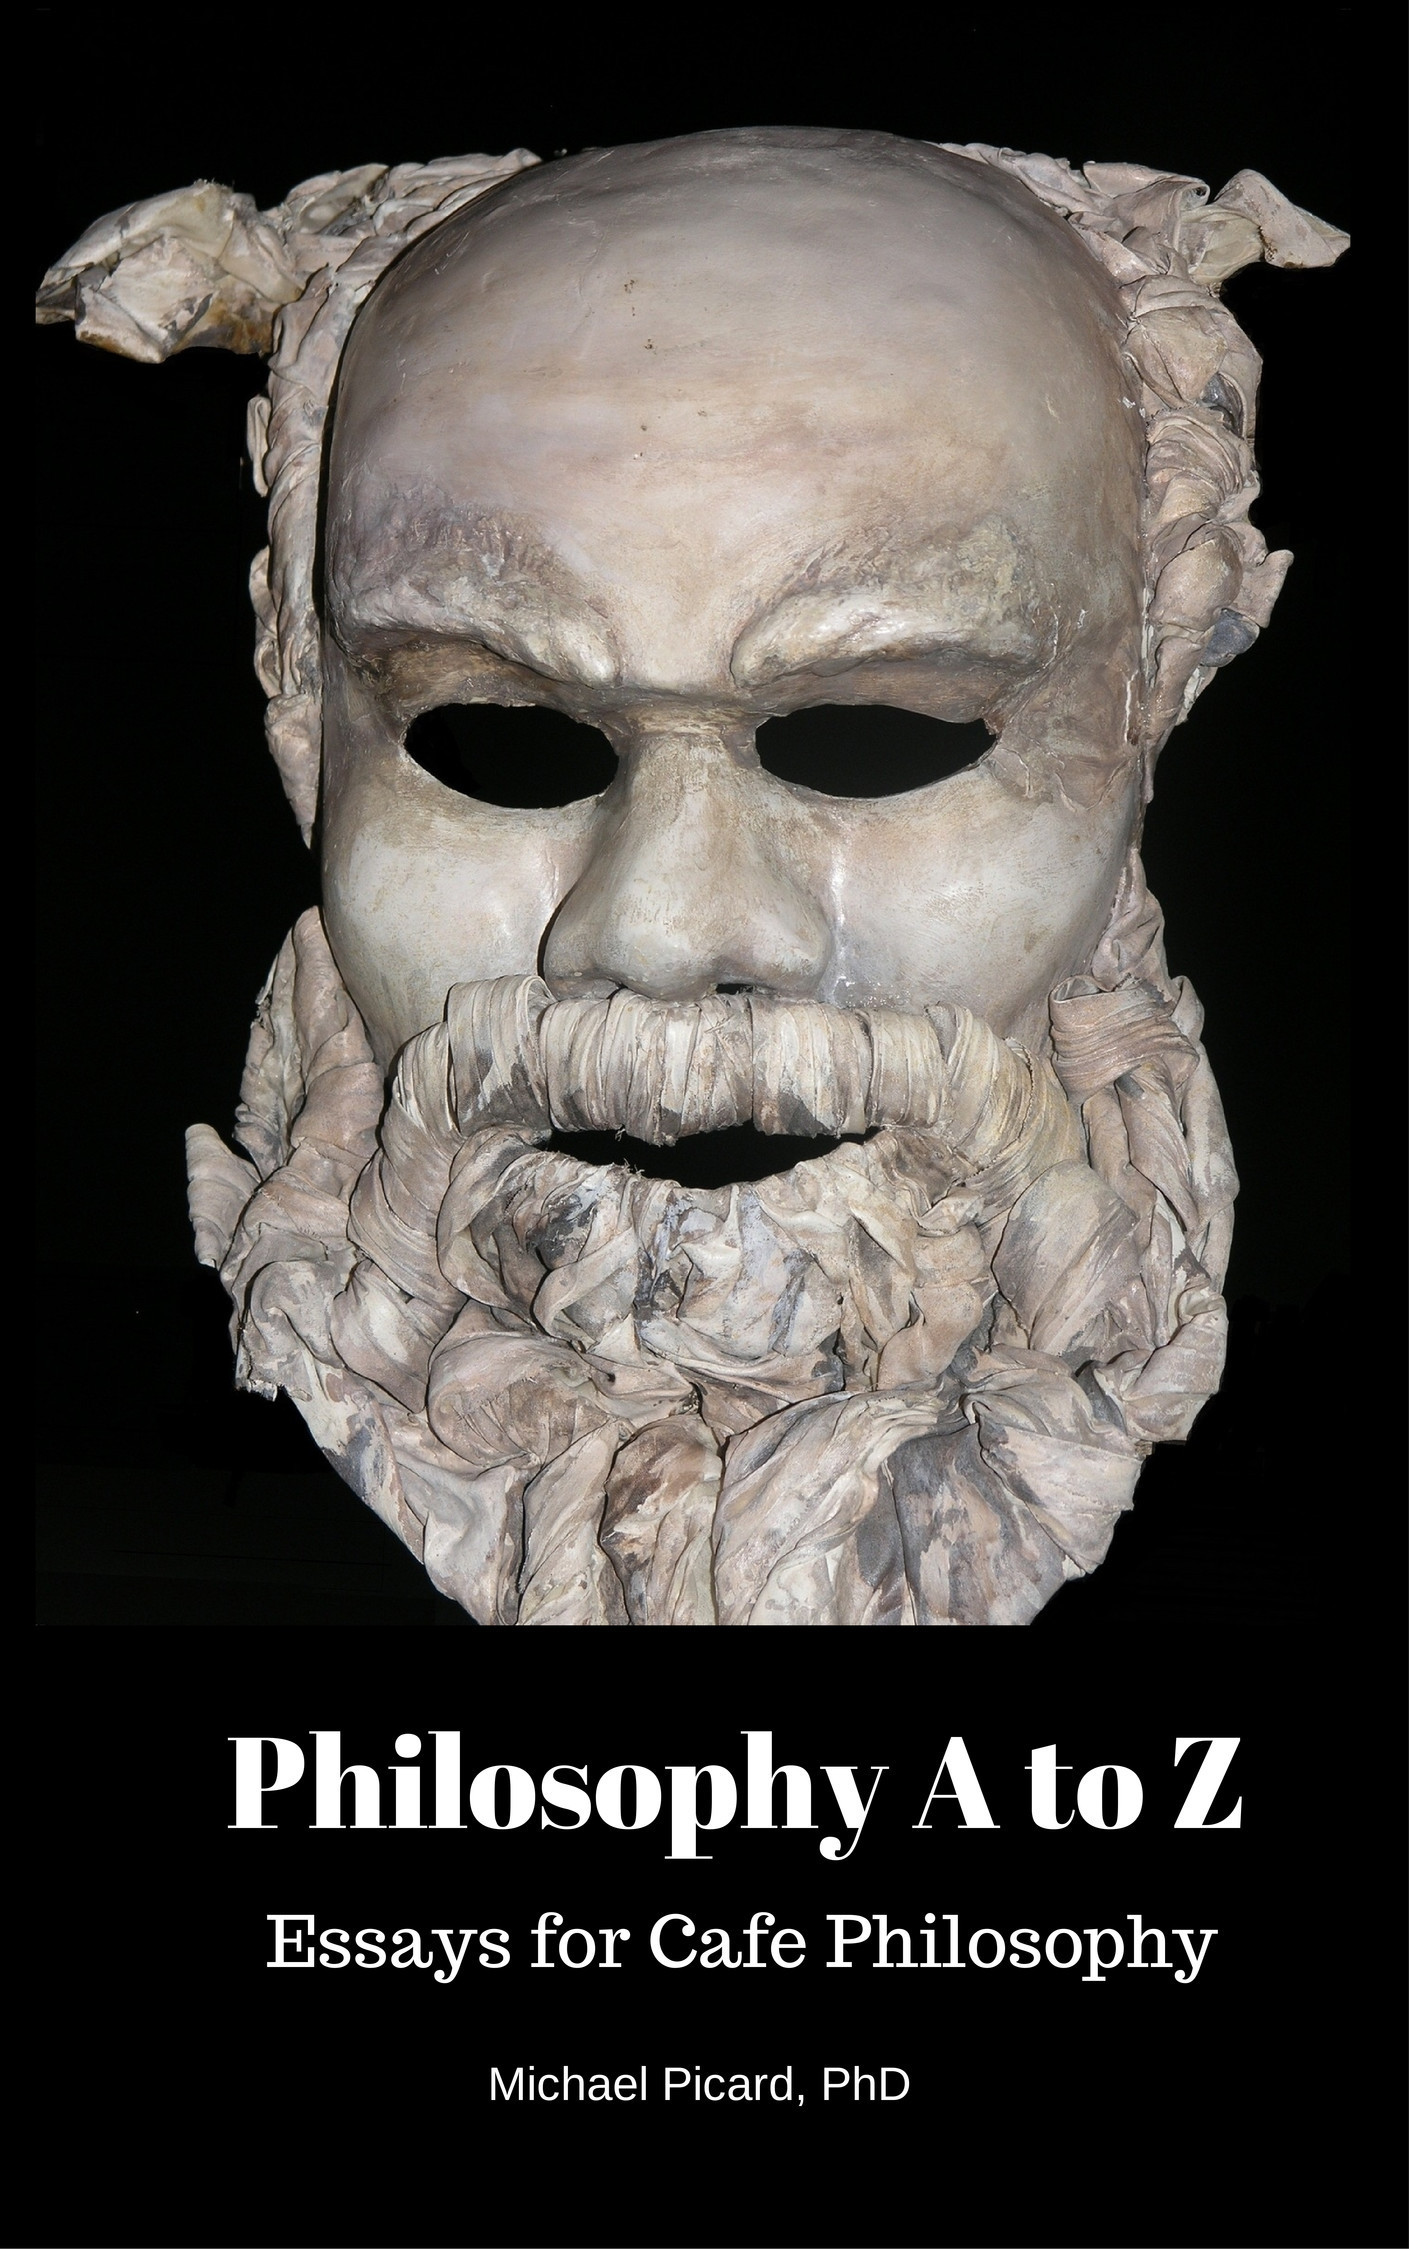 Philosophy A to Z: Essays for Cafe Philosophy  by  Michael Picard